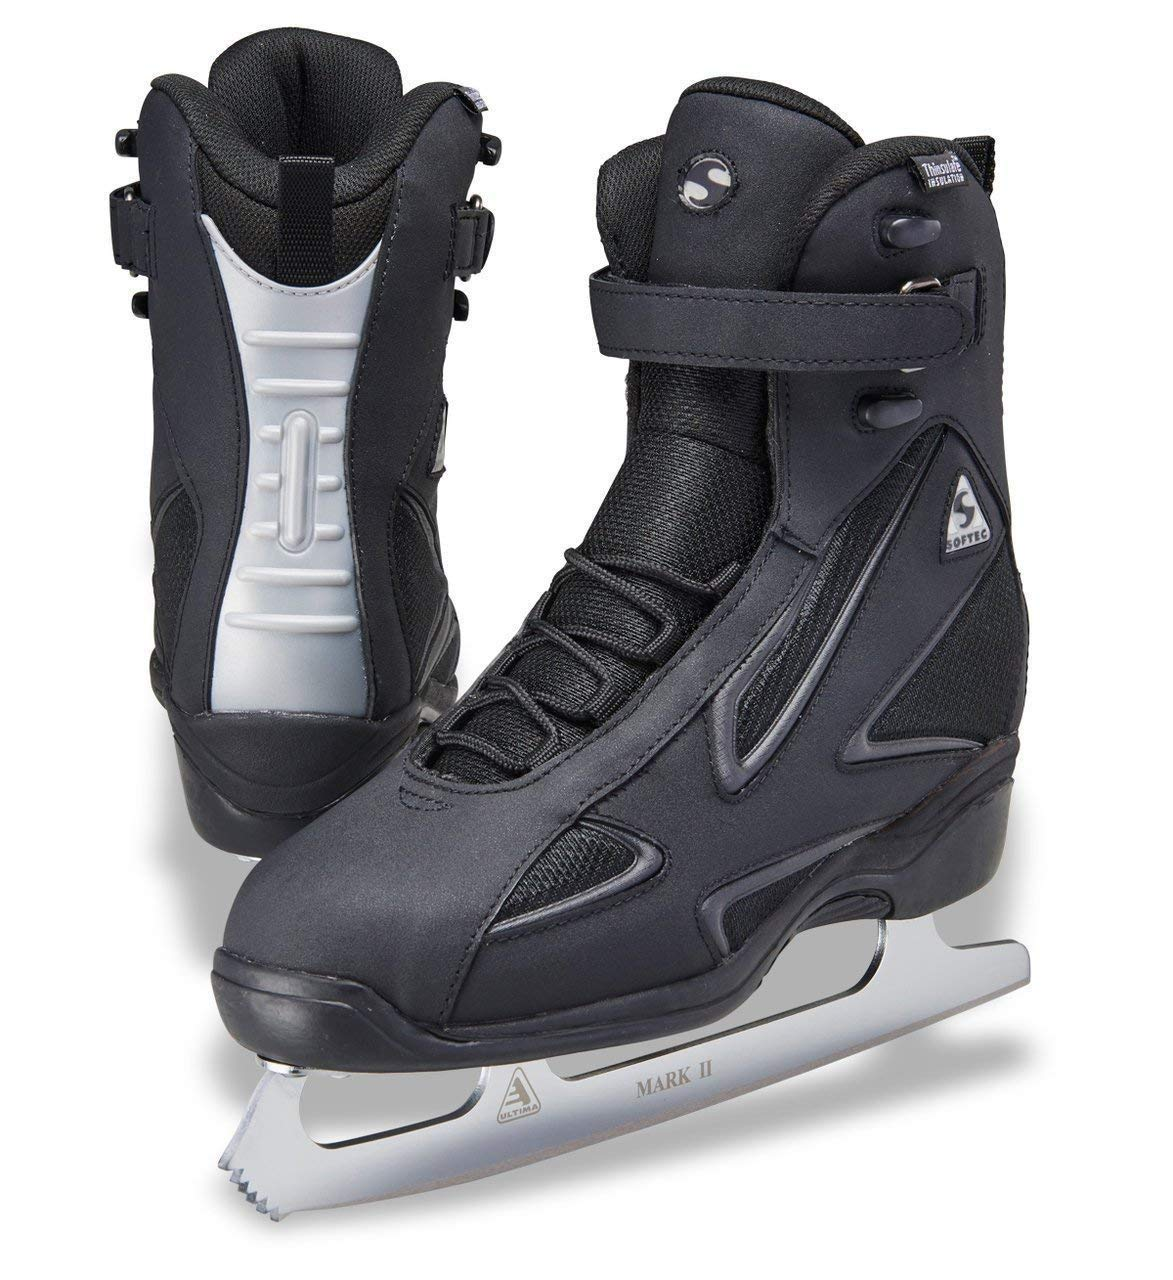 c912c3f596ce5 Best Rated in Ice Skates & Helpful Customer Reviews - Amazon.com